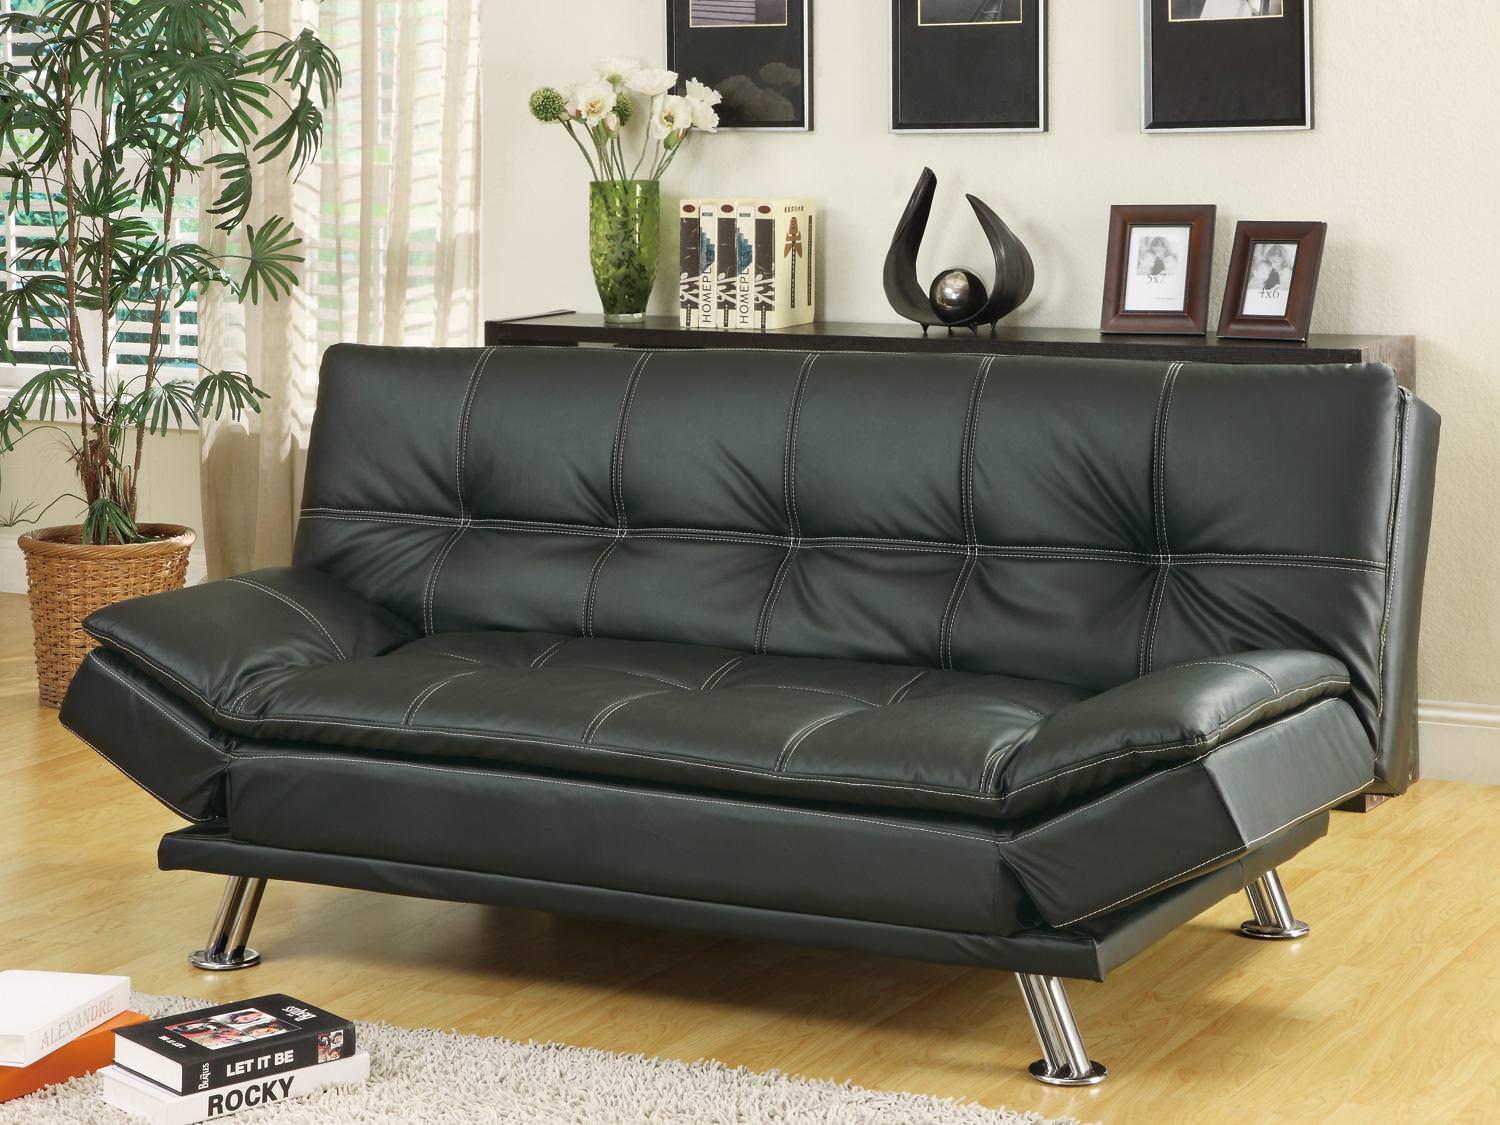 Magnificent Sofa Bed Black With Available Matching Chaise And Storage Squirreltailoven Fun Painted Chair Ideas Images Squirreltailovenorg